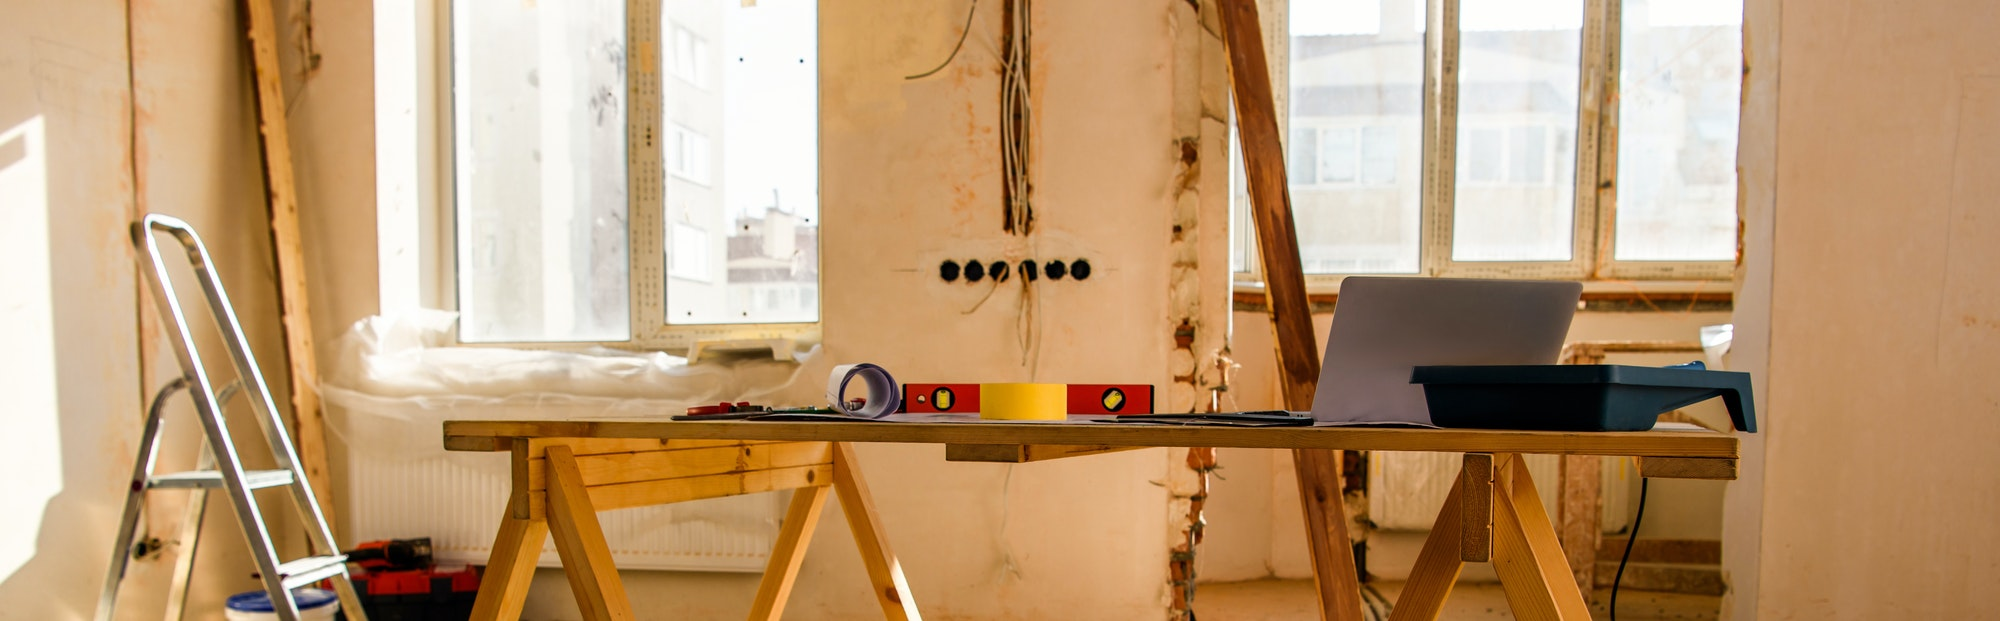 panoramic view of room with tools, ladder and laptop during renovation of home